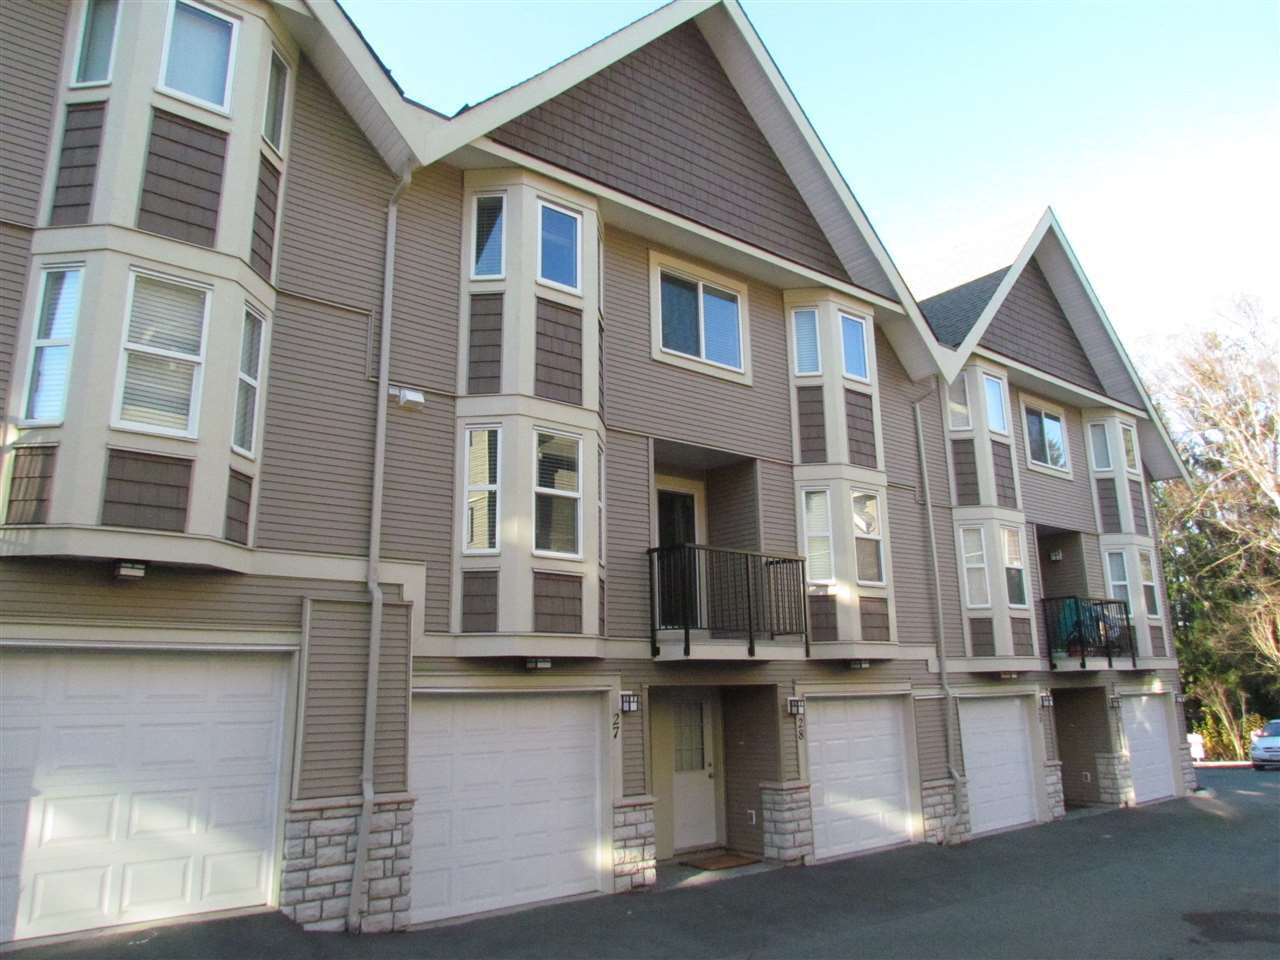 """Main Photo: 29 33313 GEORGE FERGUSON Way in Abbotsford: Central Abbotsford Townhouse for sale in """"Cedar Lane"""" : MLS®# R2030877"""